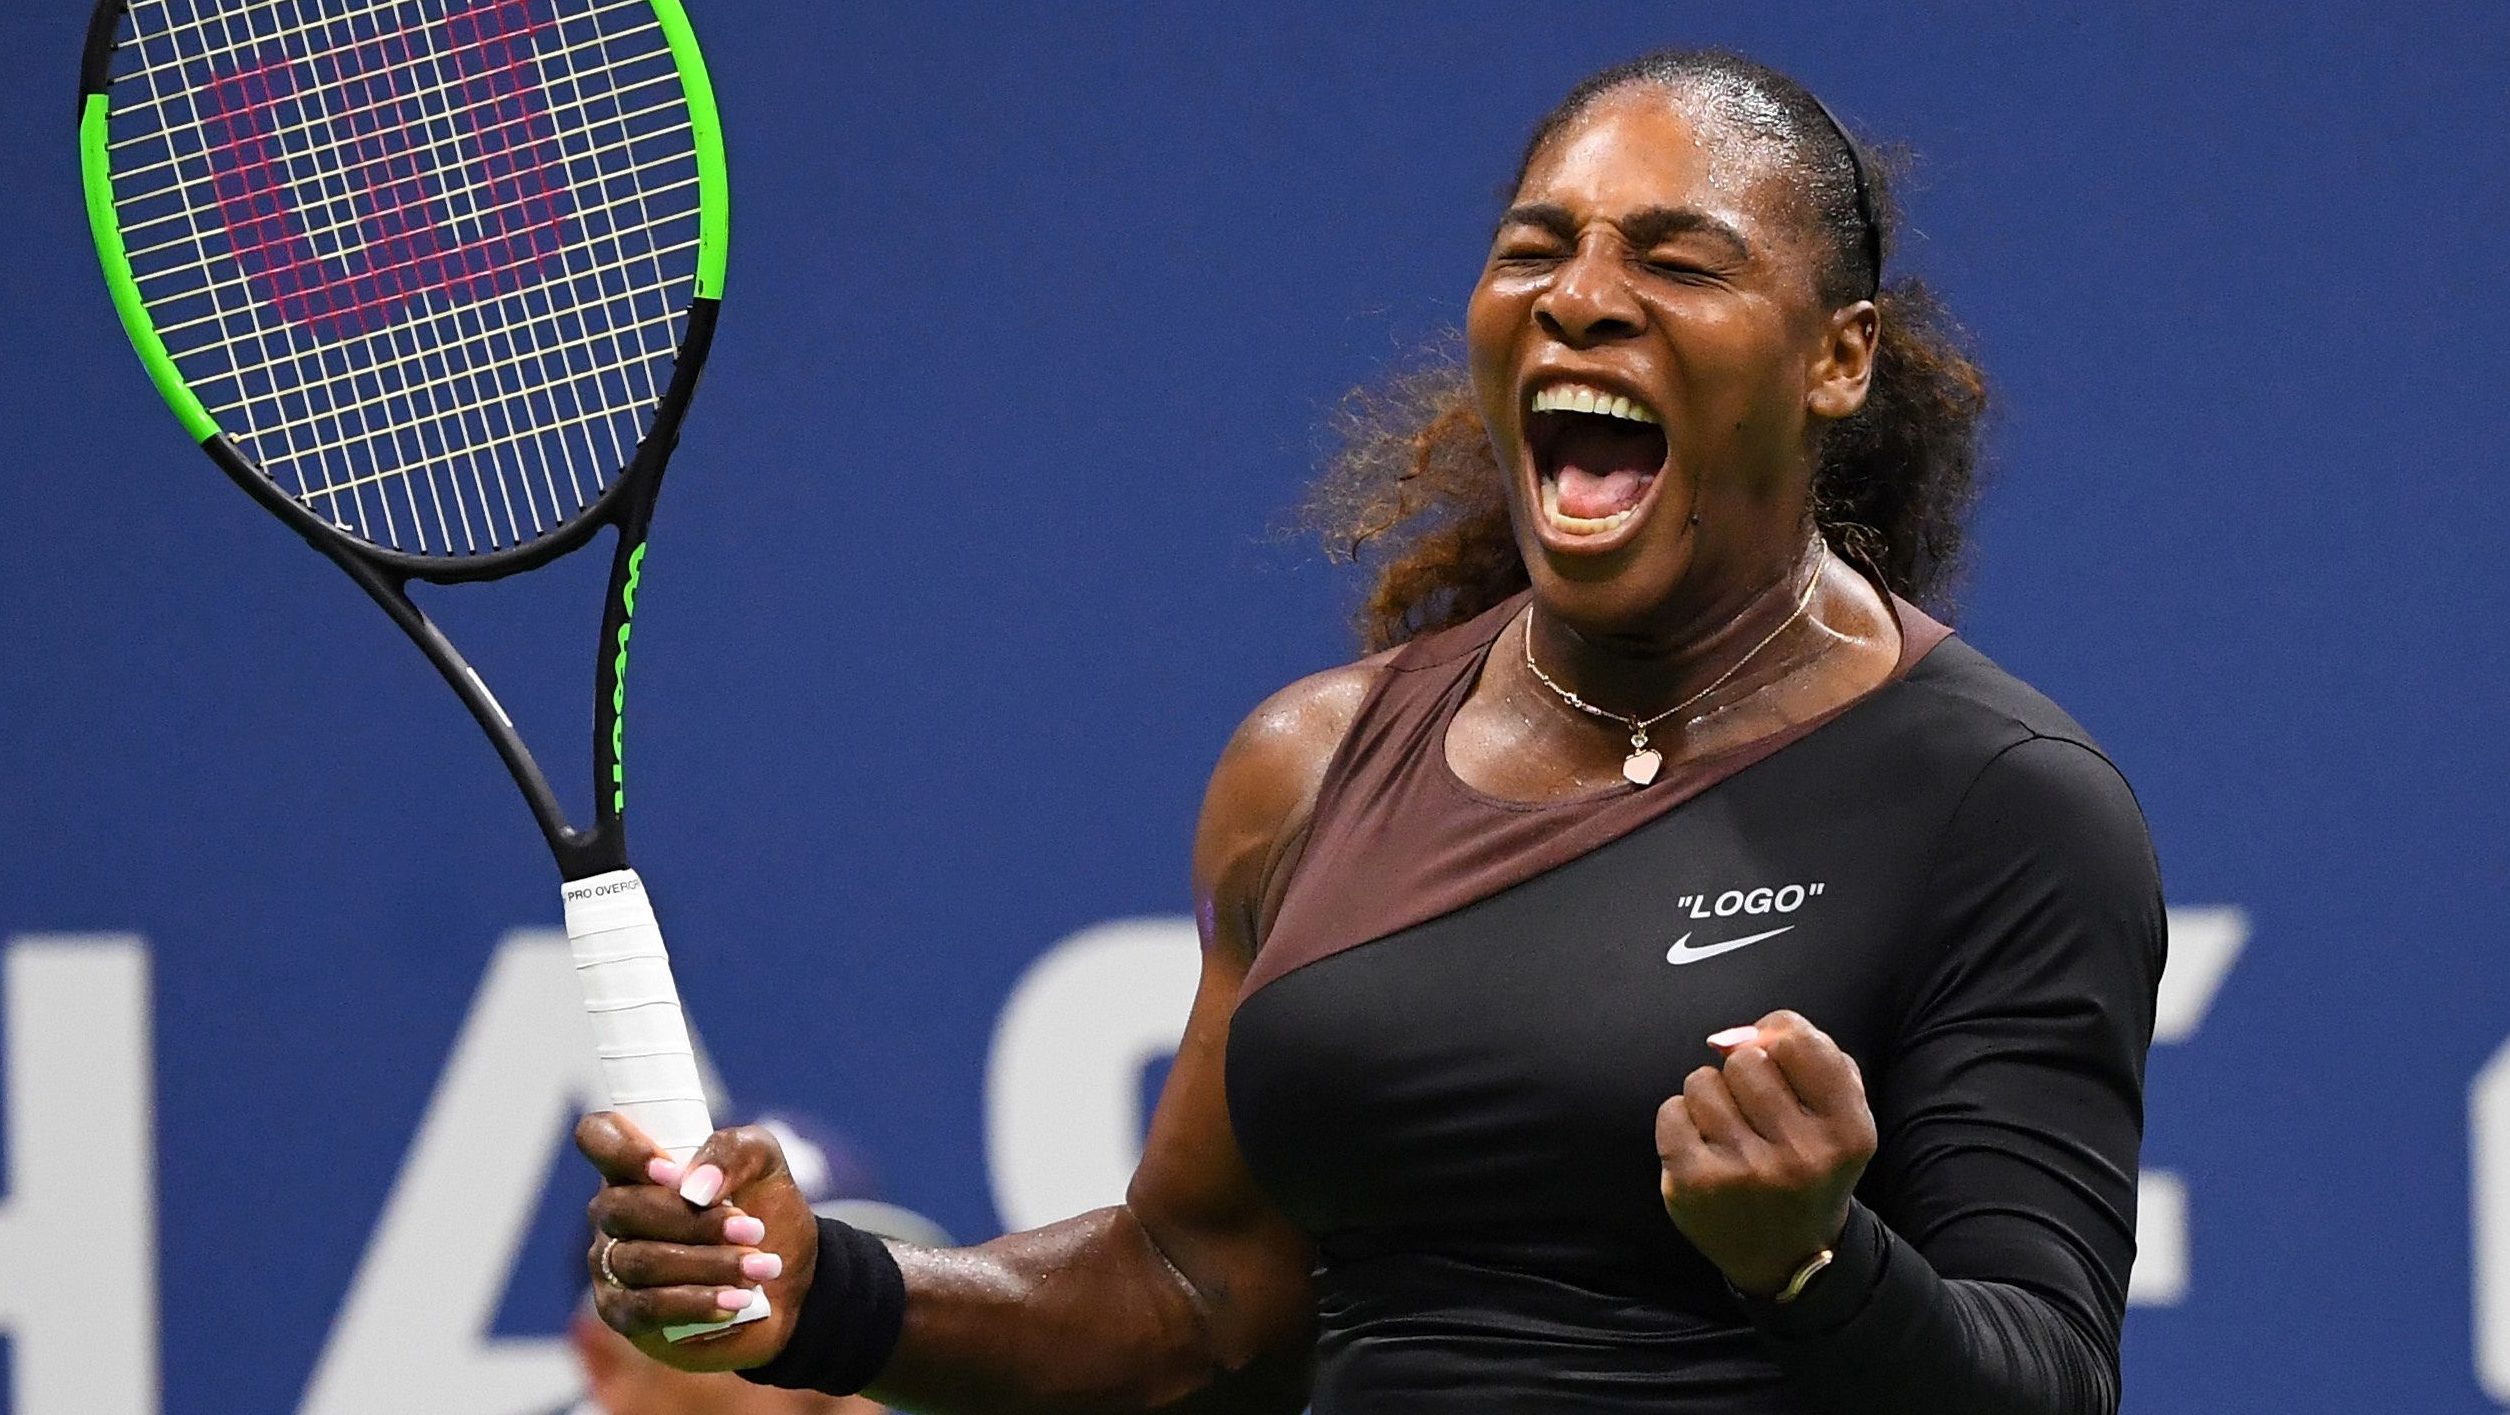 Serena Williams celebrates a win against Magda Linette of Poland in a first round match on day one of the 2018 U.S. Open tennis tournament at USTA Billie Jean King National Tennis Center, on August 27, 2018.